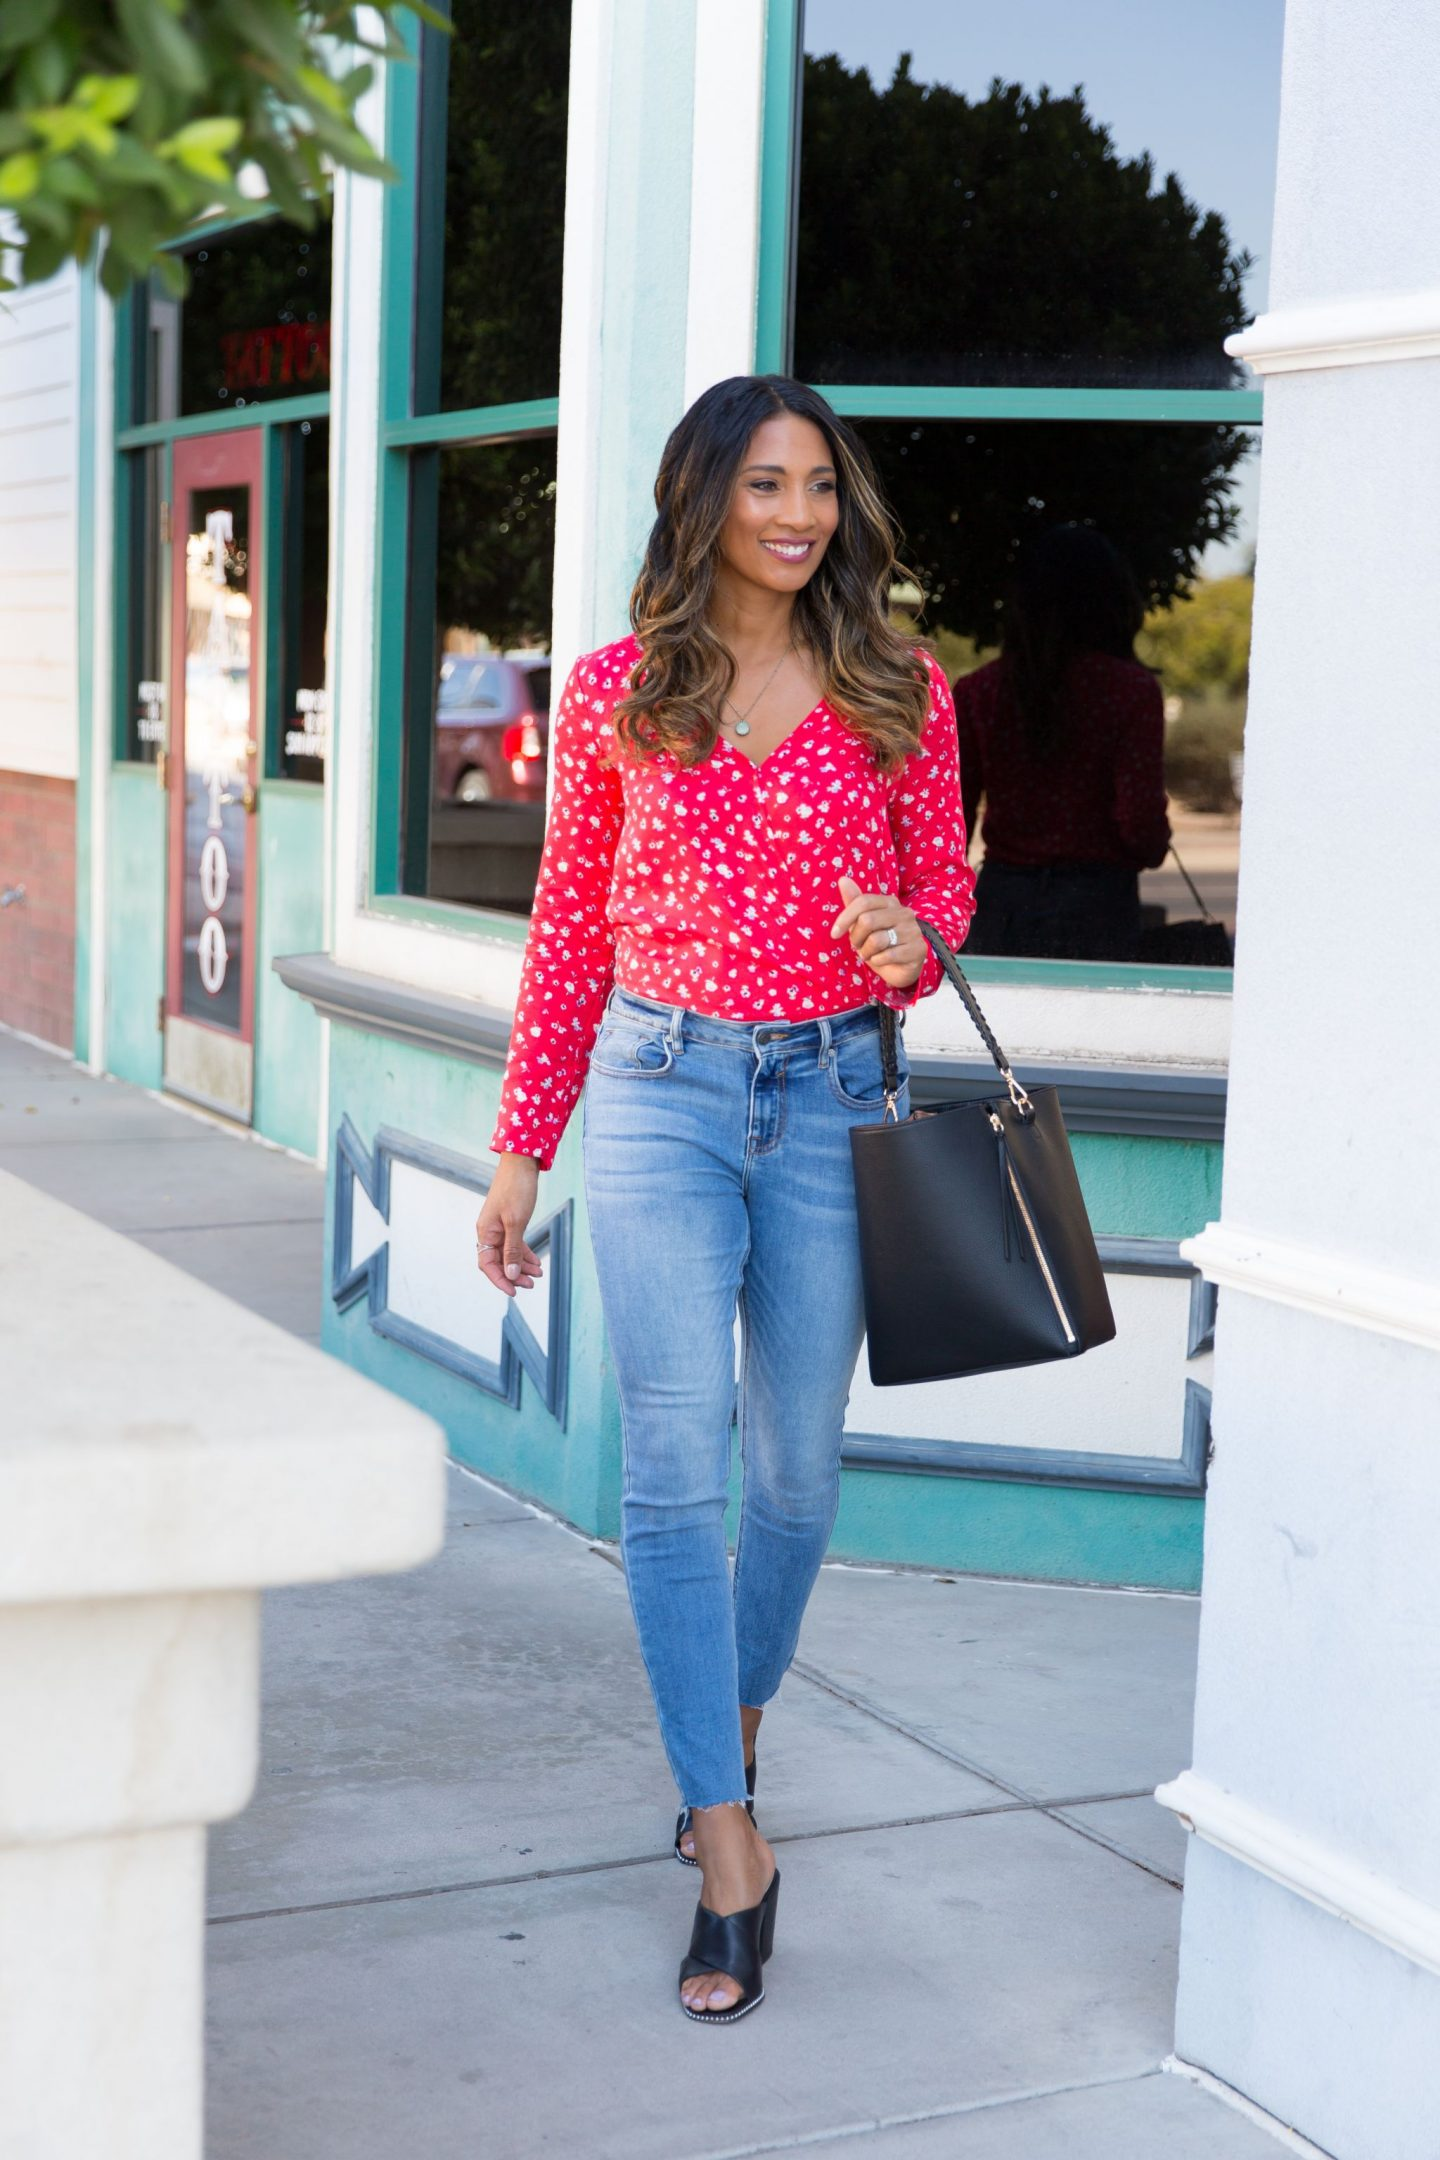 FALL FASHION, FLORAL TOP, OUTFIT INSPO, CUTE OUTFITS, STYLE, AZ BLOGGER